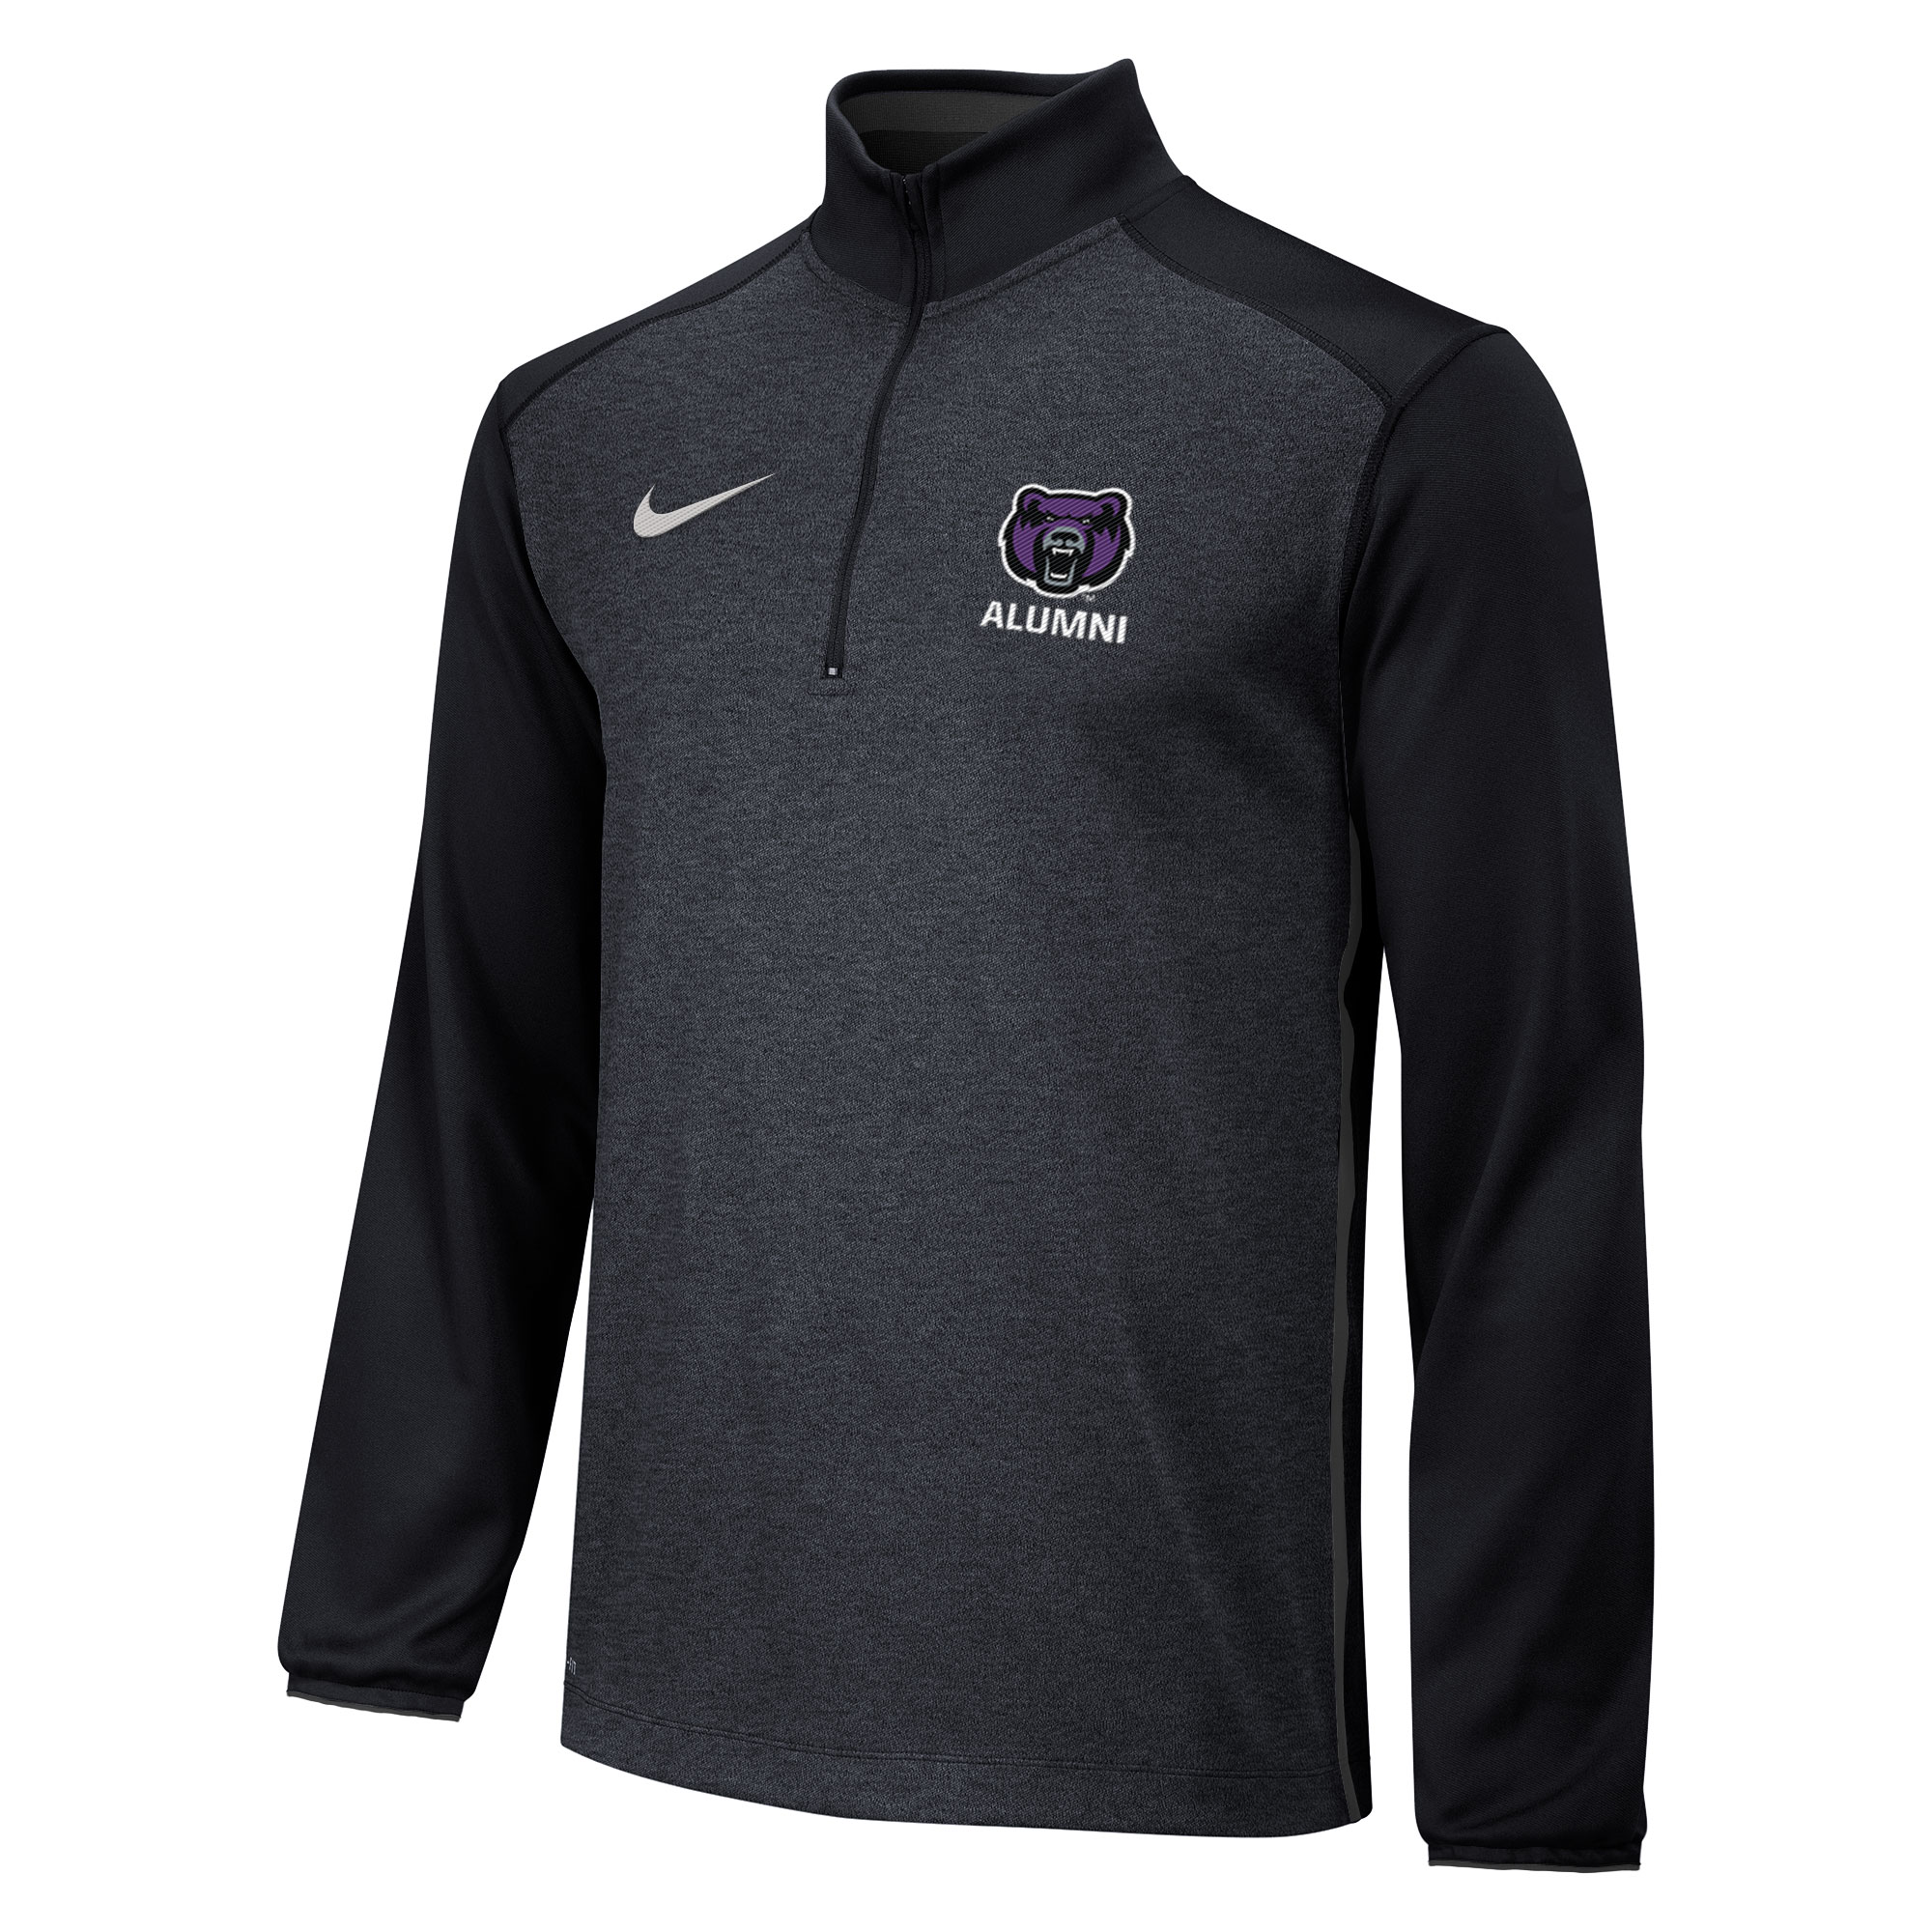 Alumni Coaches 1/2 Zip Top